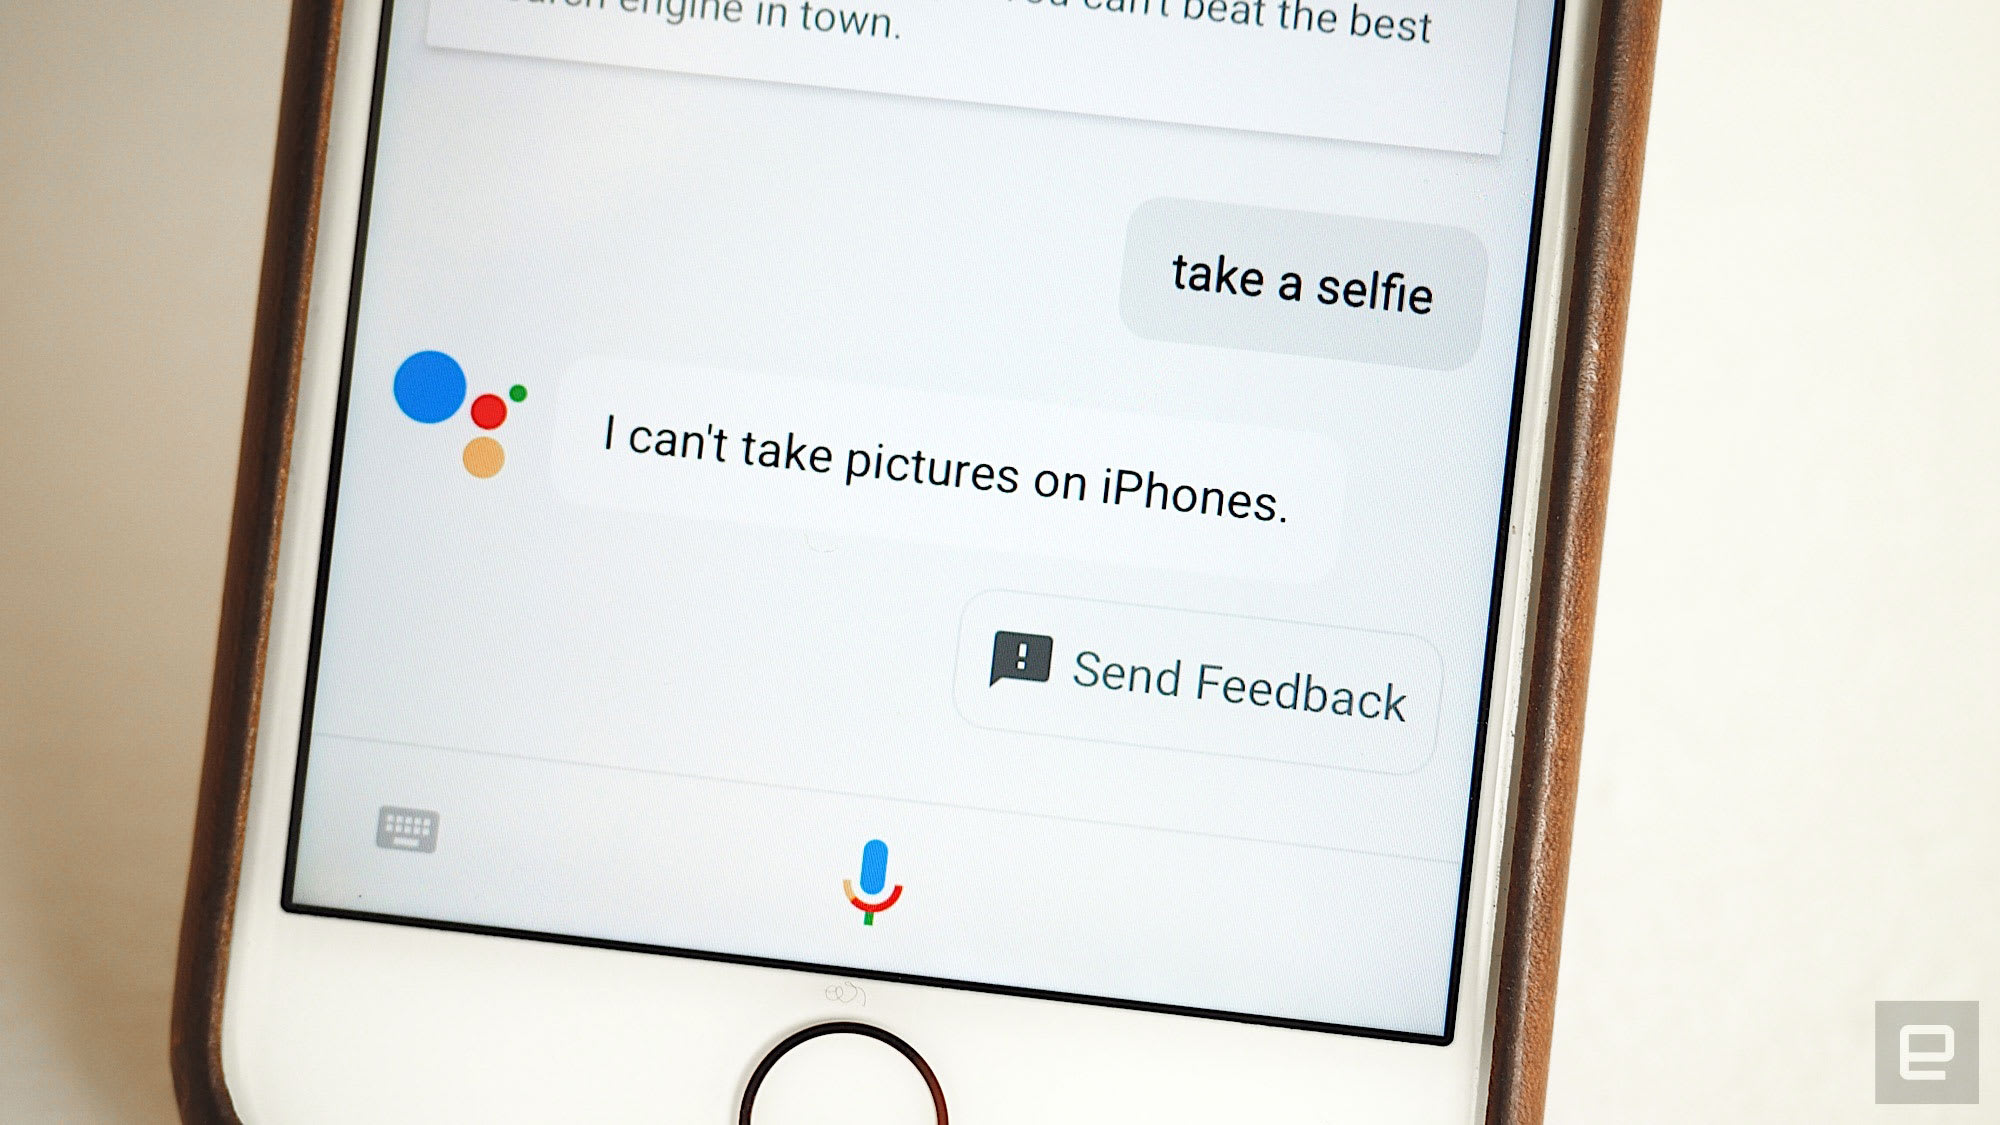 Google Assistant on the iPhone is better than Siri, but not much